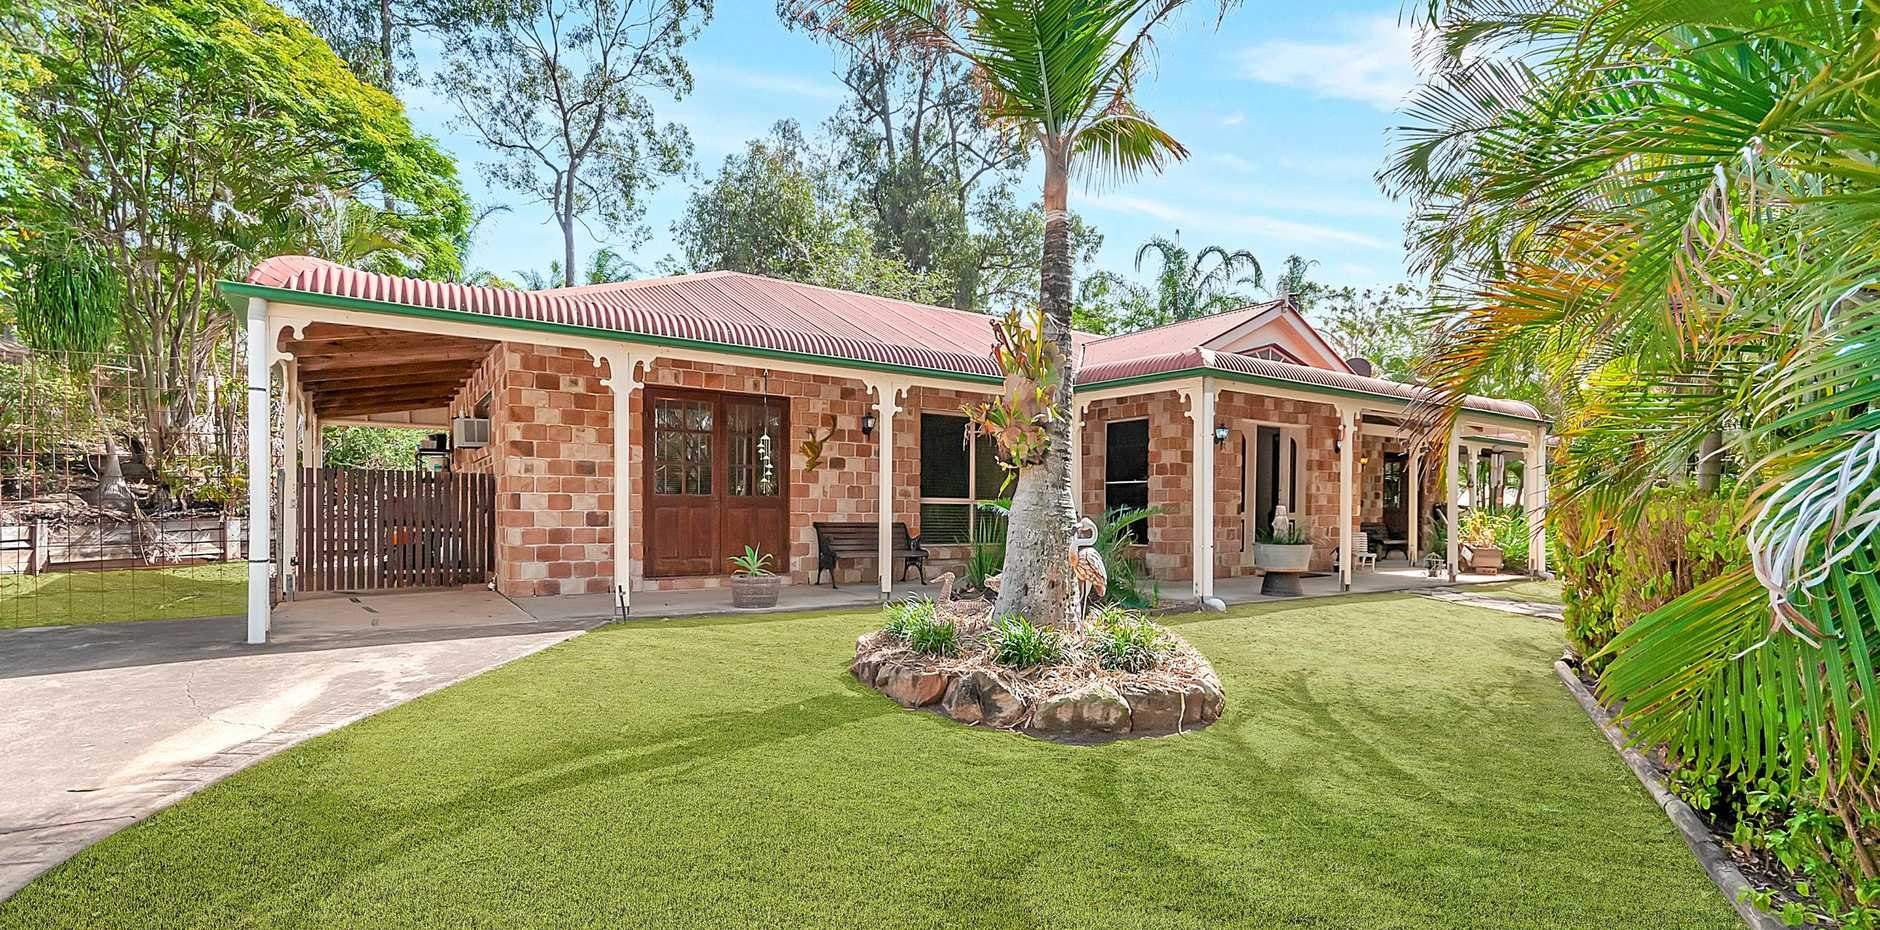 Many Ipswich suburbs offer great properties for people looking to break in to the market. Don't miss Saturday's edition of the  QT  for your free  Property Guide  magazine to find out more about this stunning home.